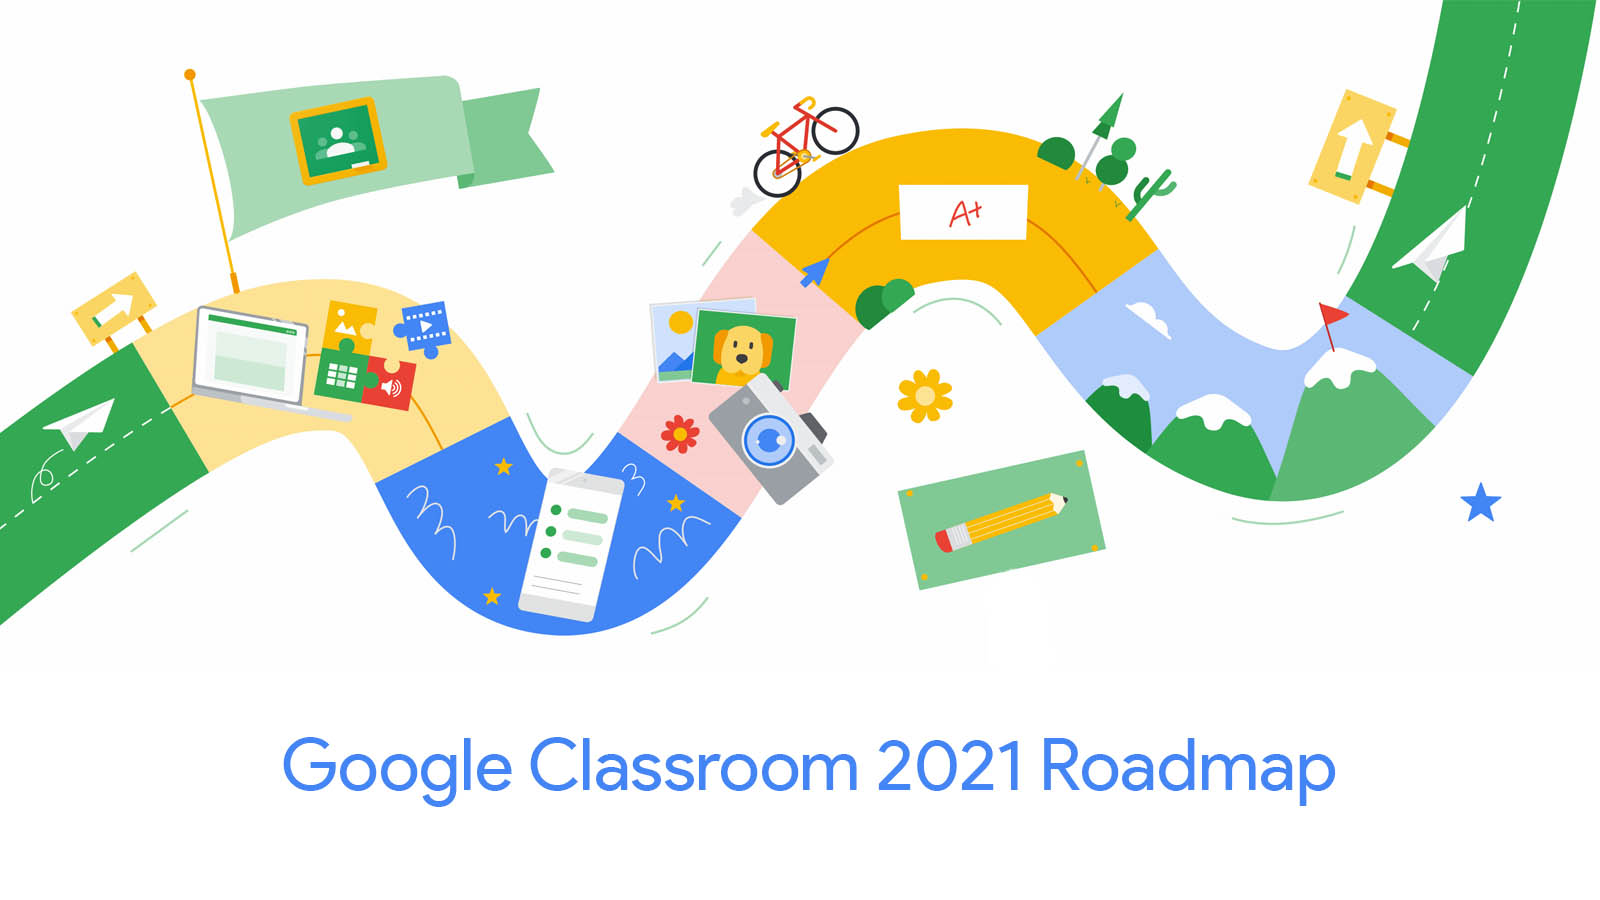 [U] Google Classroom plans to further transform distanced learning with its 2021 feature roadmap